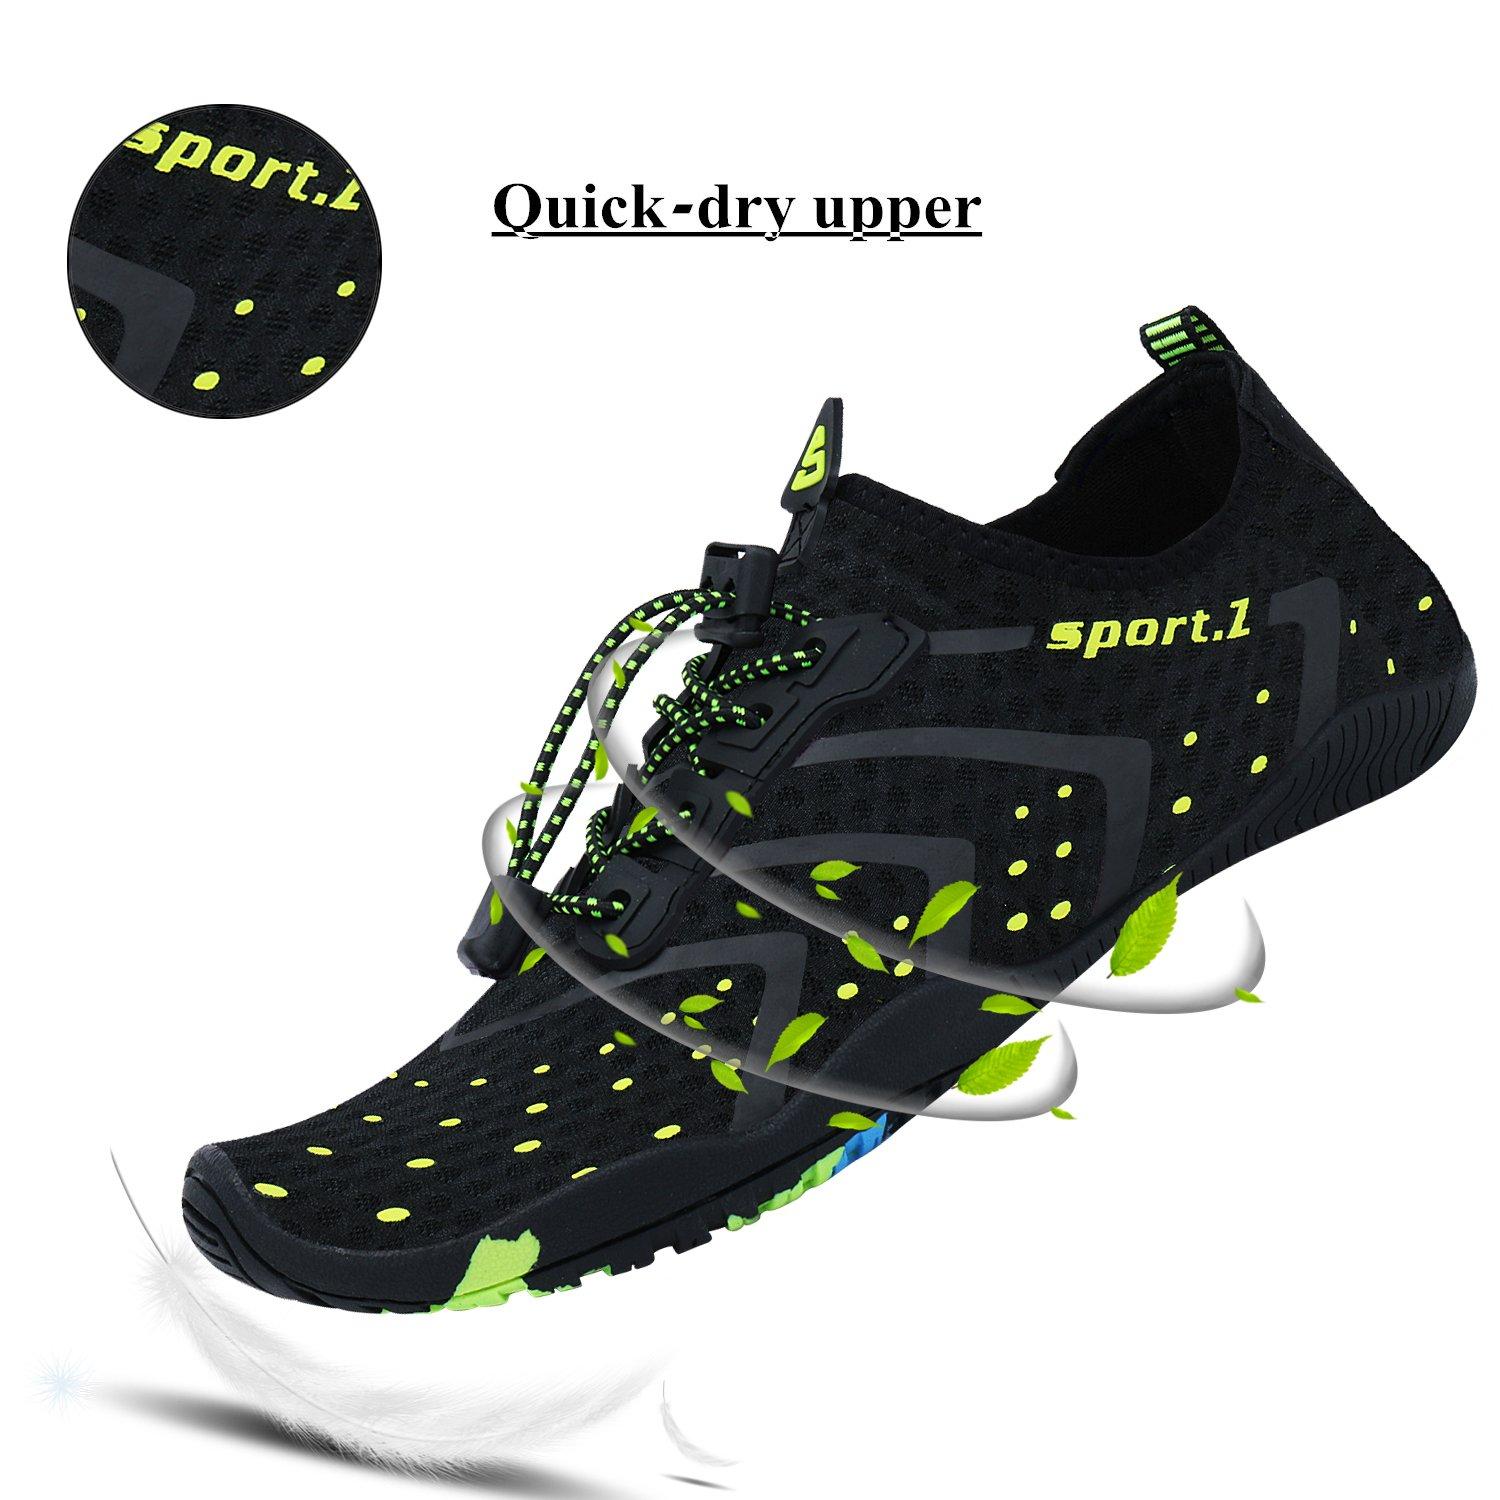 WXDZ Athletic Aqua Sock Water Shoes for Water Sport Beach Pool Boat Surfing Diving by WXDZ (Image #2)